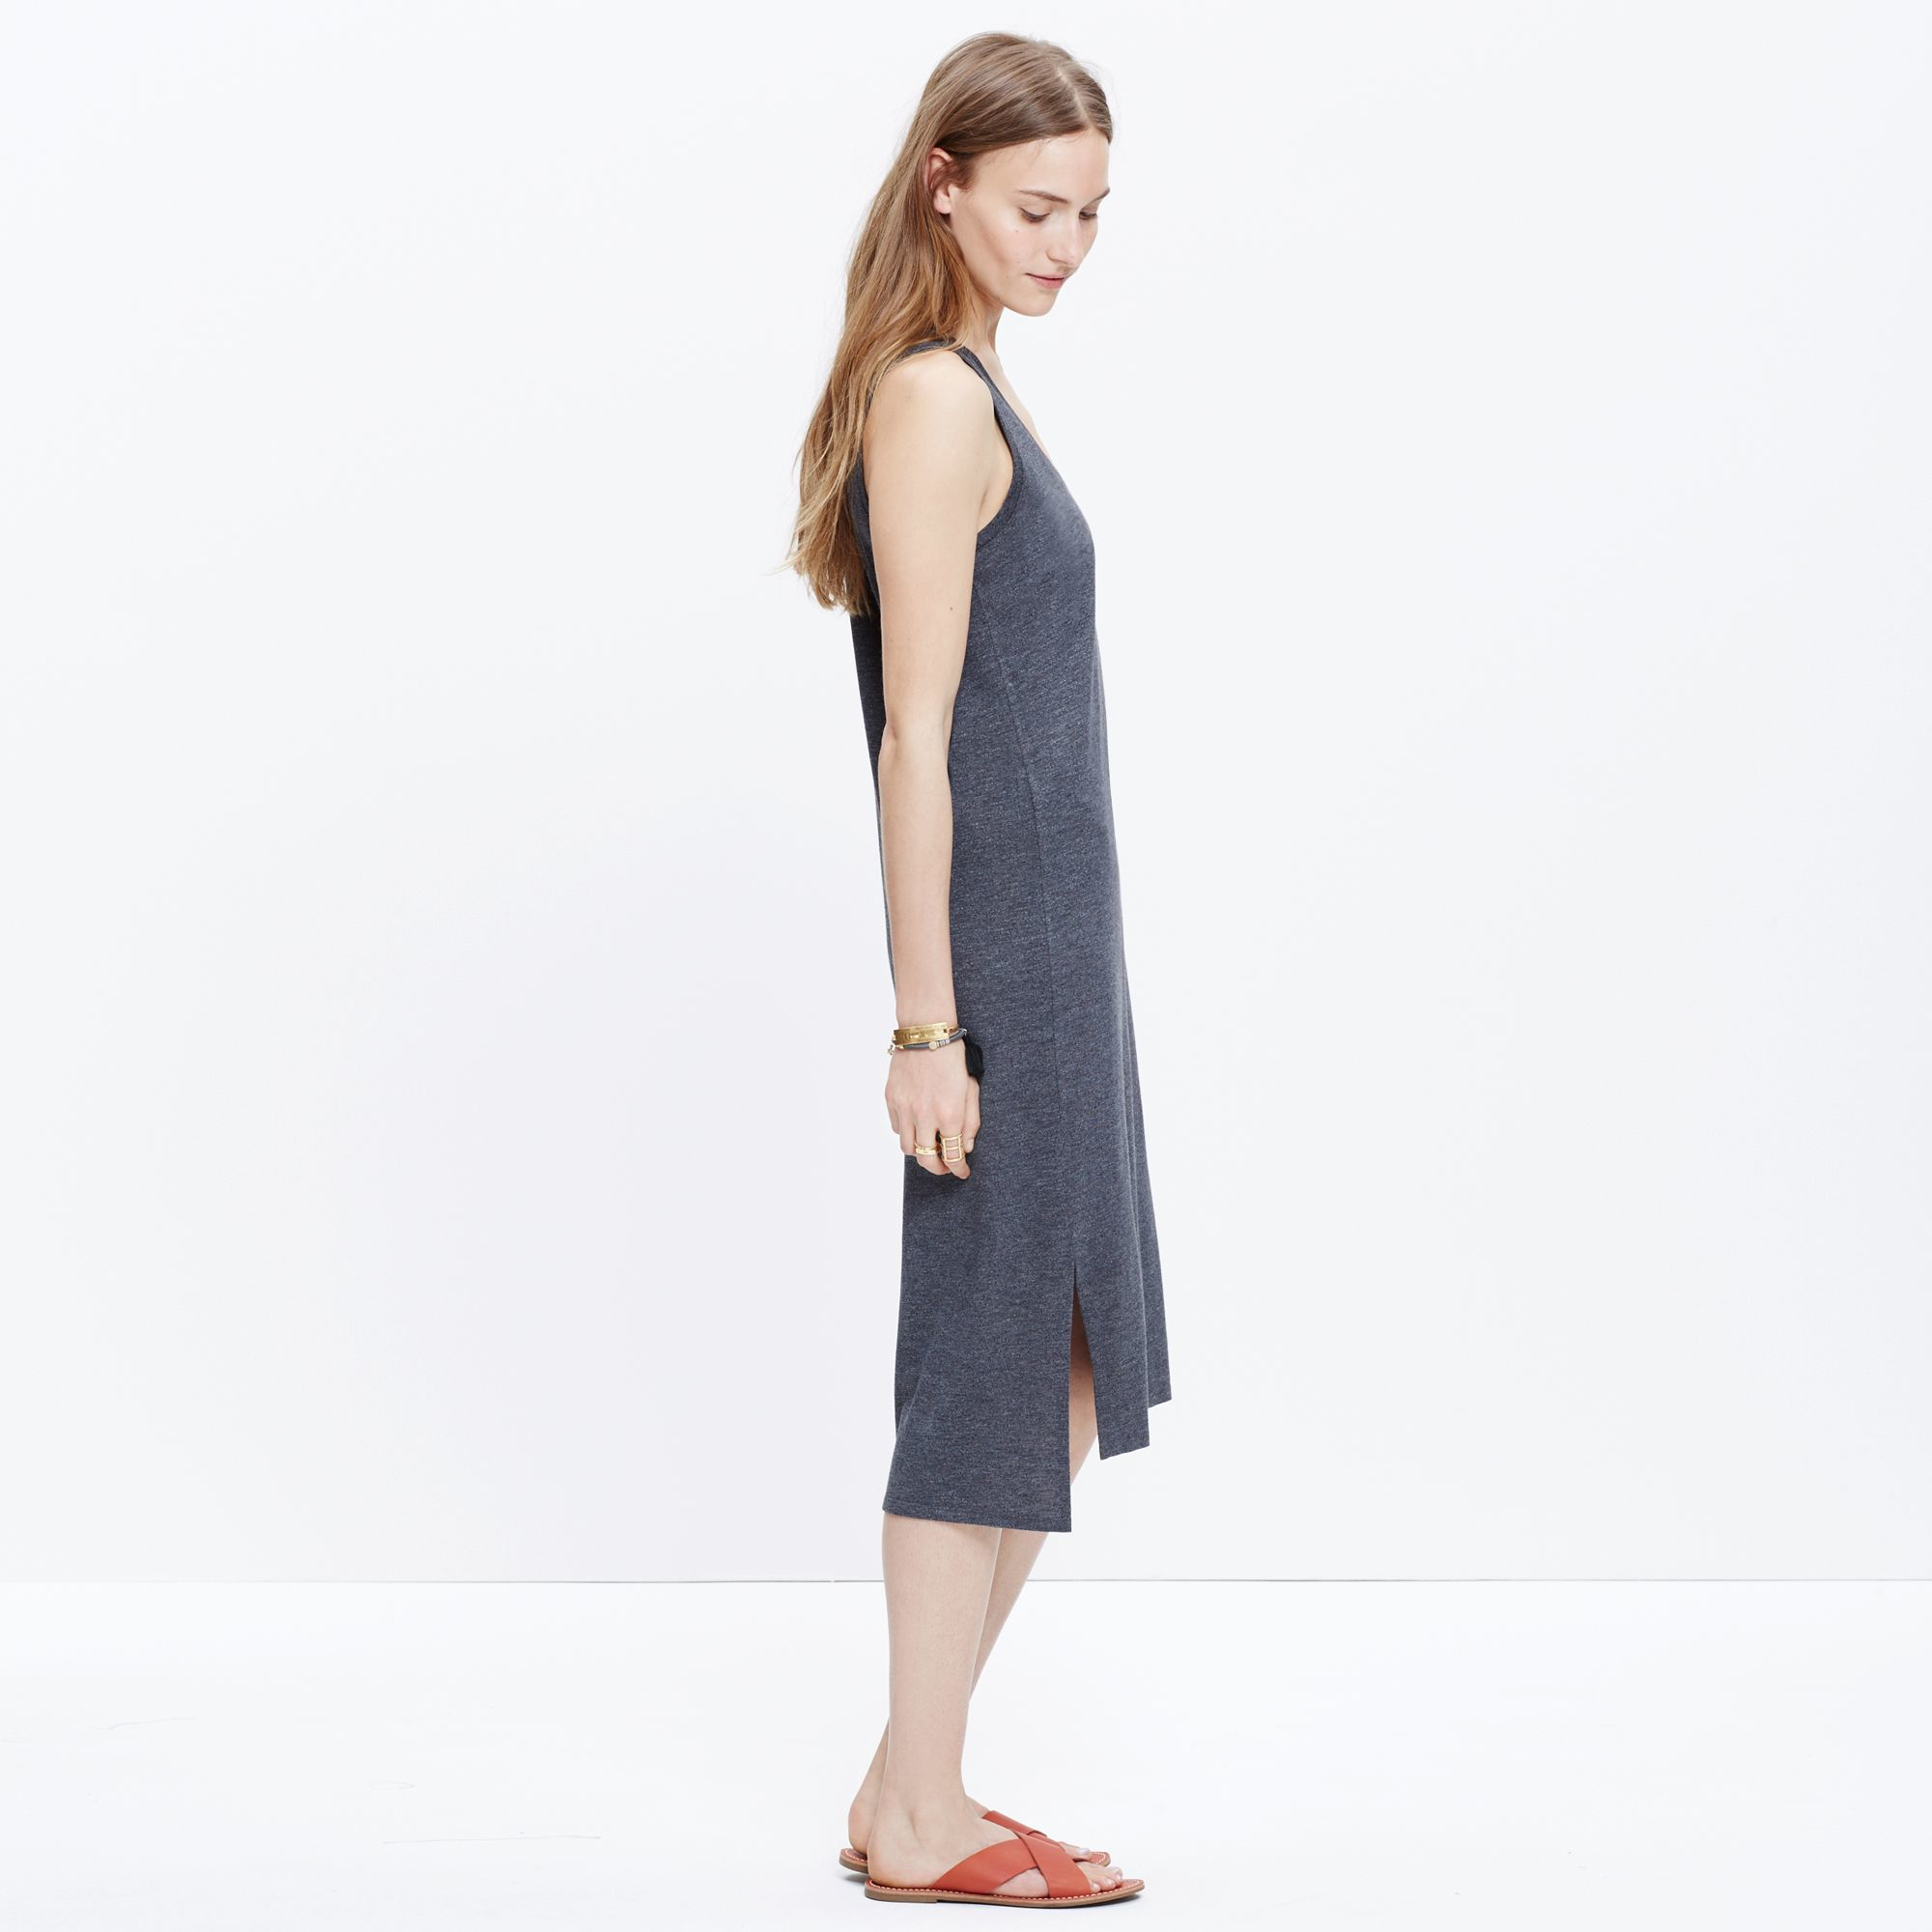 41019a8bf1d Madewell Jersey Tank Dress in Gray - Lyst